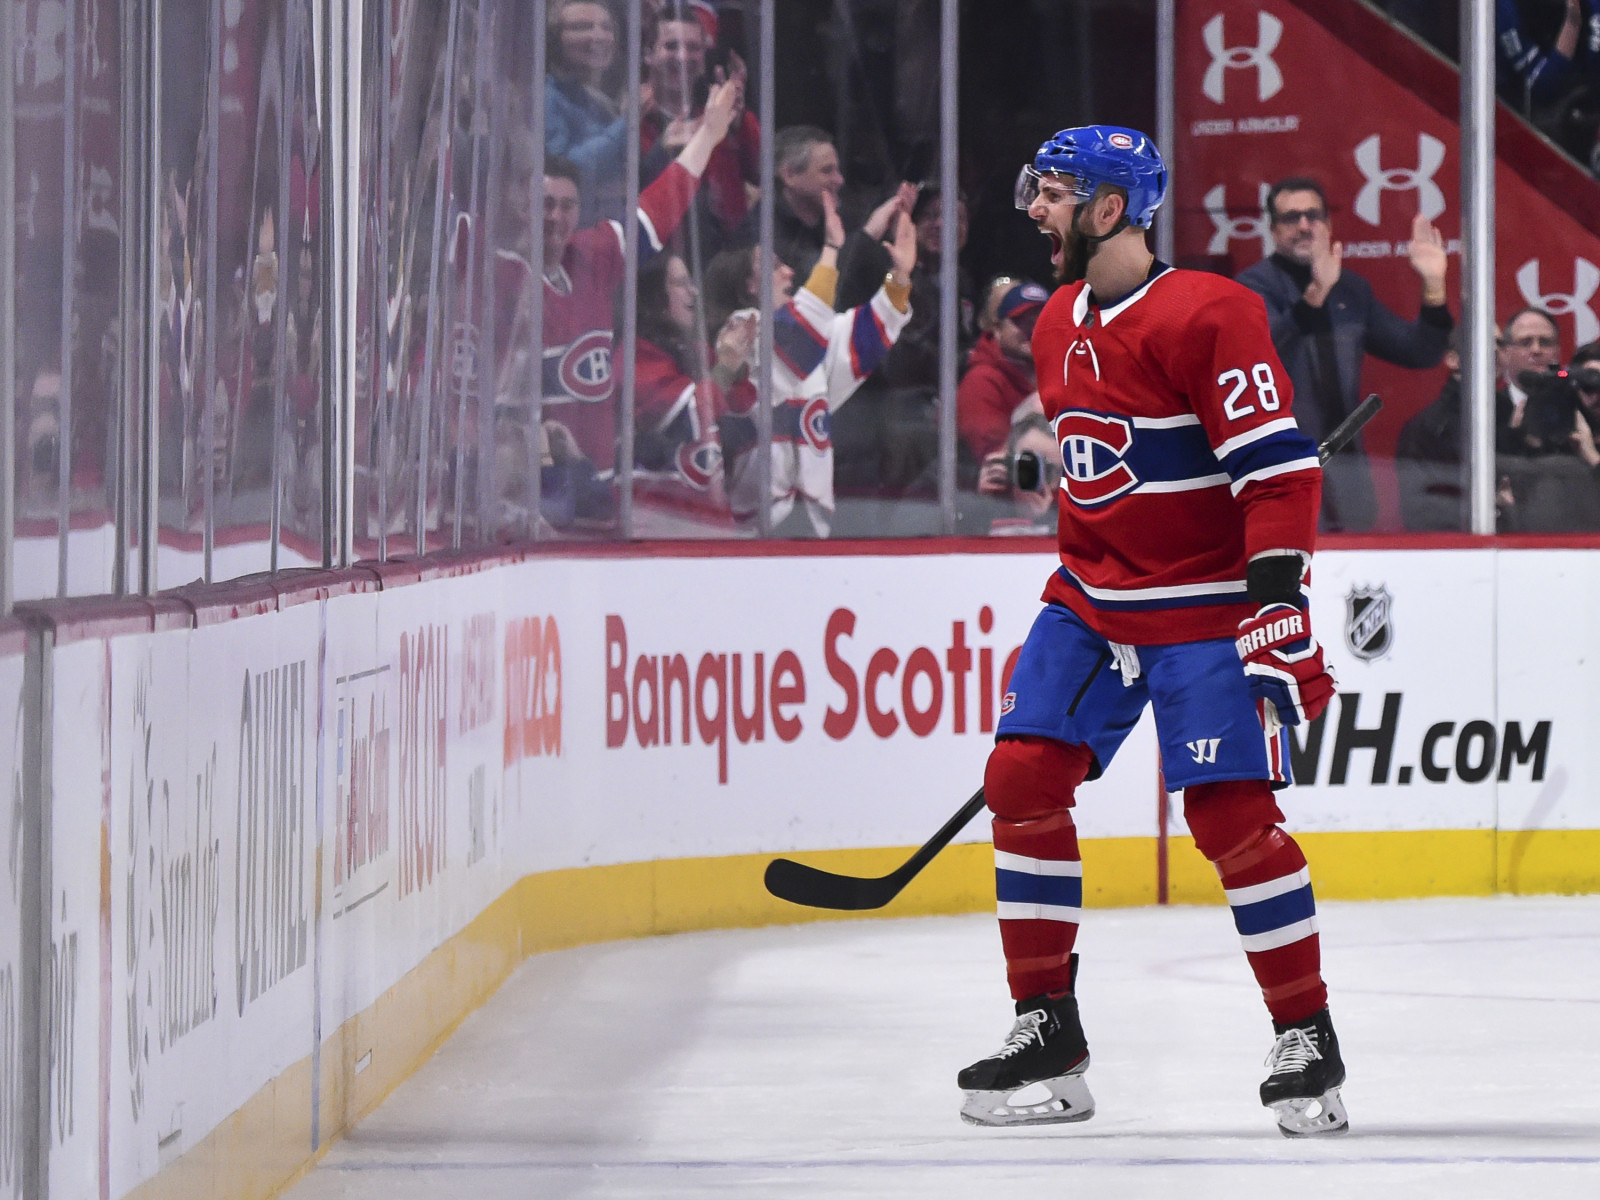 Montreal Canadiens trade Marco Scandella to the St. Louis Blues for picks